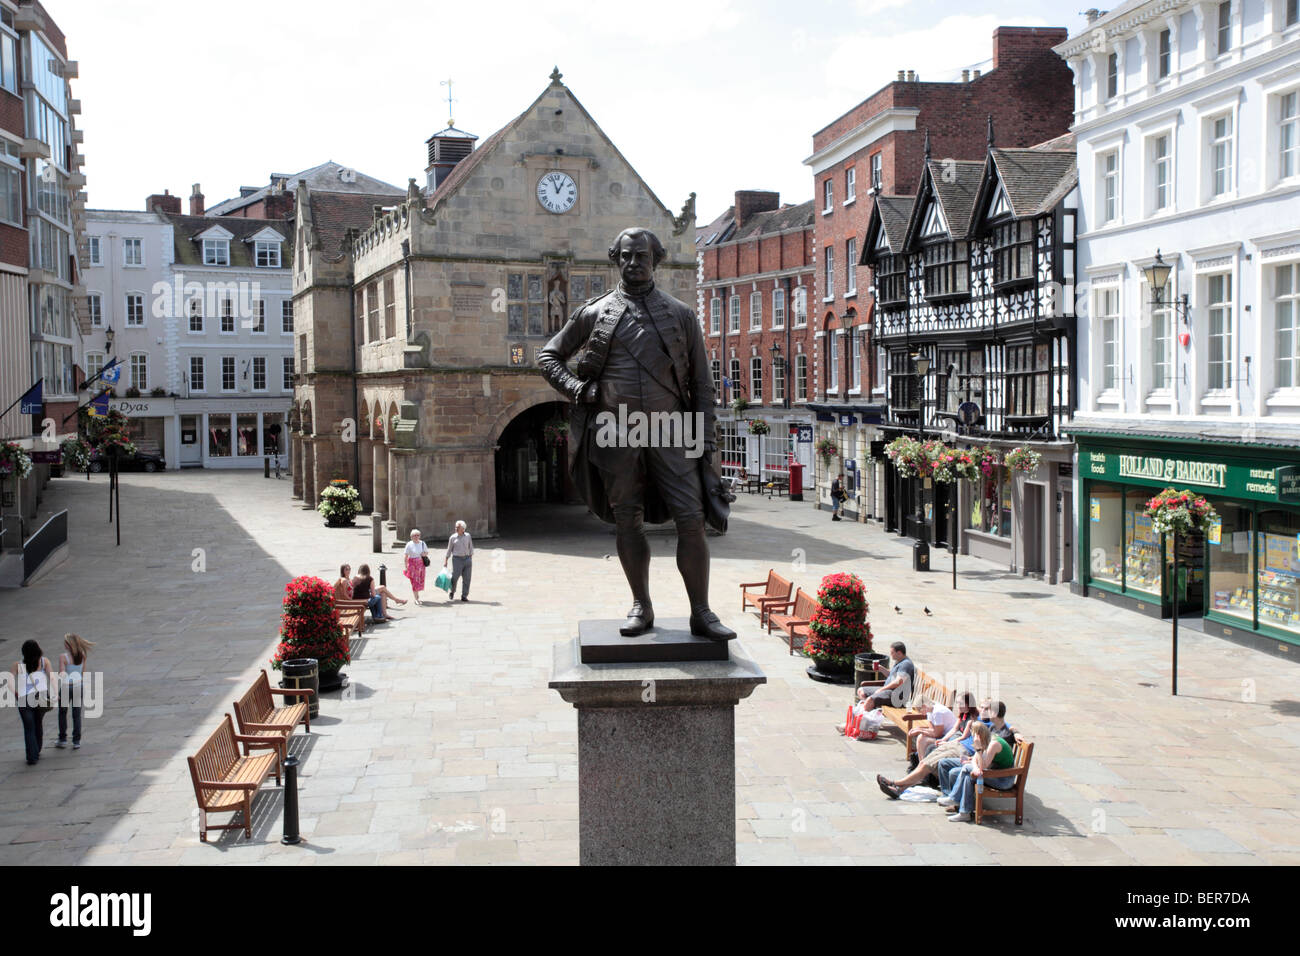 Statue of Clive of India, TheSquare, Shrewsbury - Stock Image